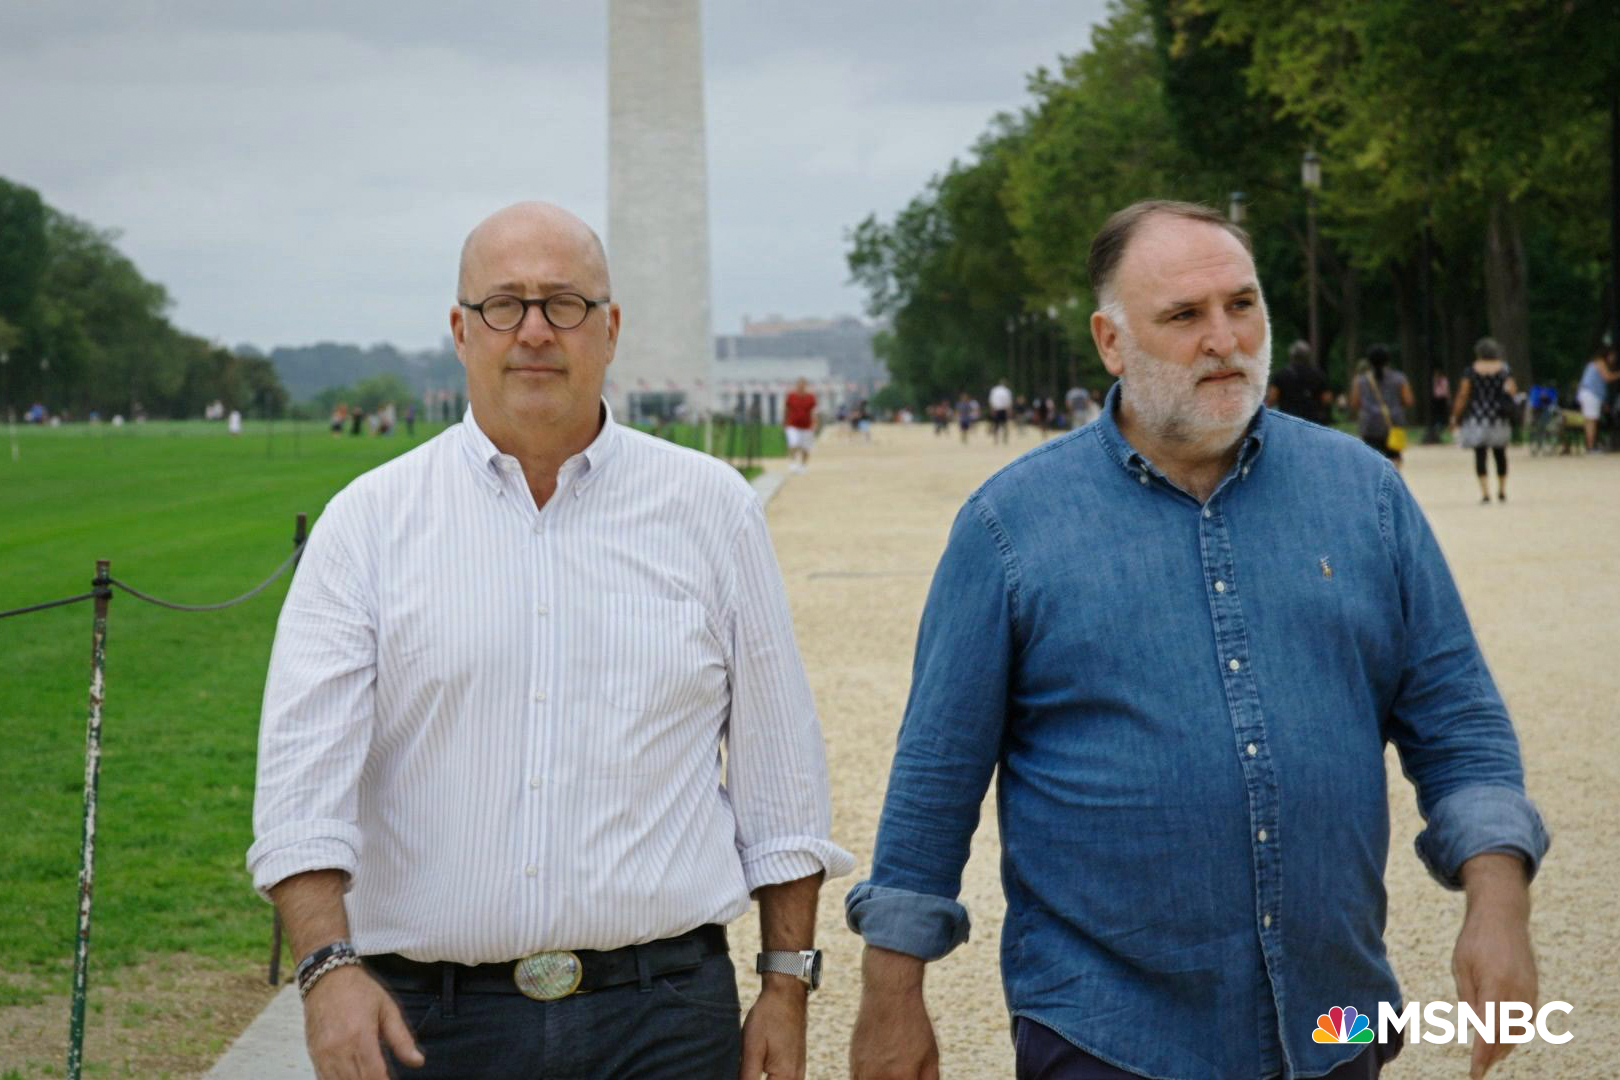 Andrew Zimmern and José Andrés walking, with the Washington Monument in the background.